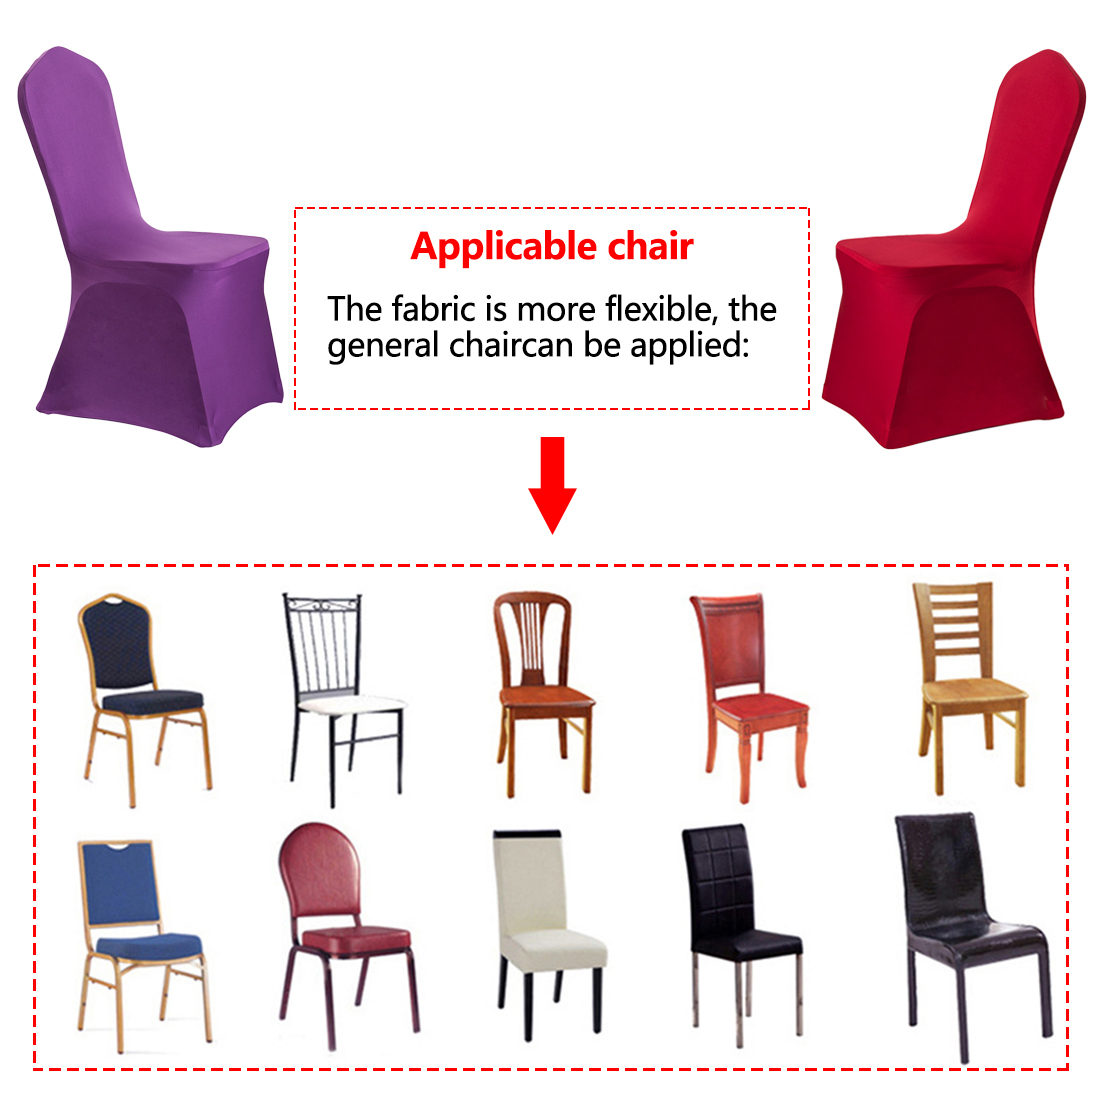 US $4.58 15% OFF|16 Pure Colors fundas sillas comedor elastica for weddings banquet party decoration stretch chair cover free shipping in Chair Cover